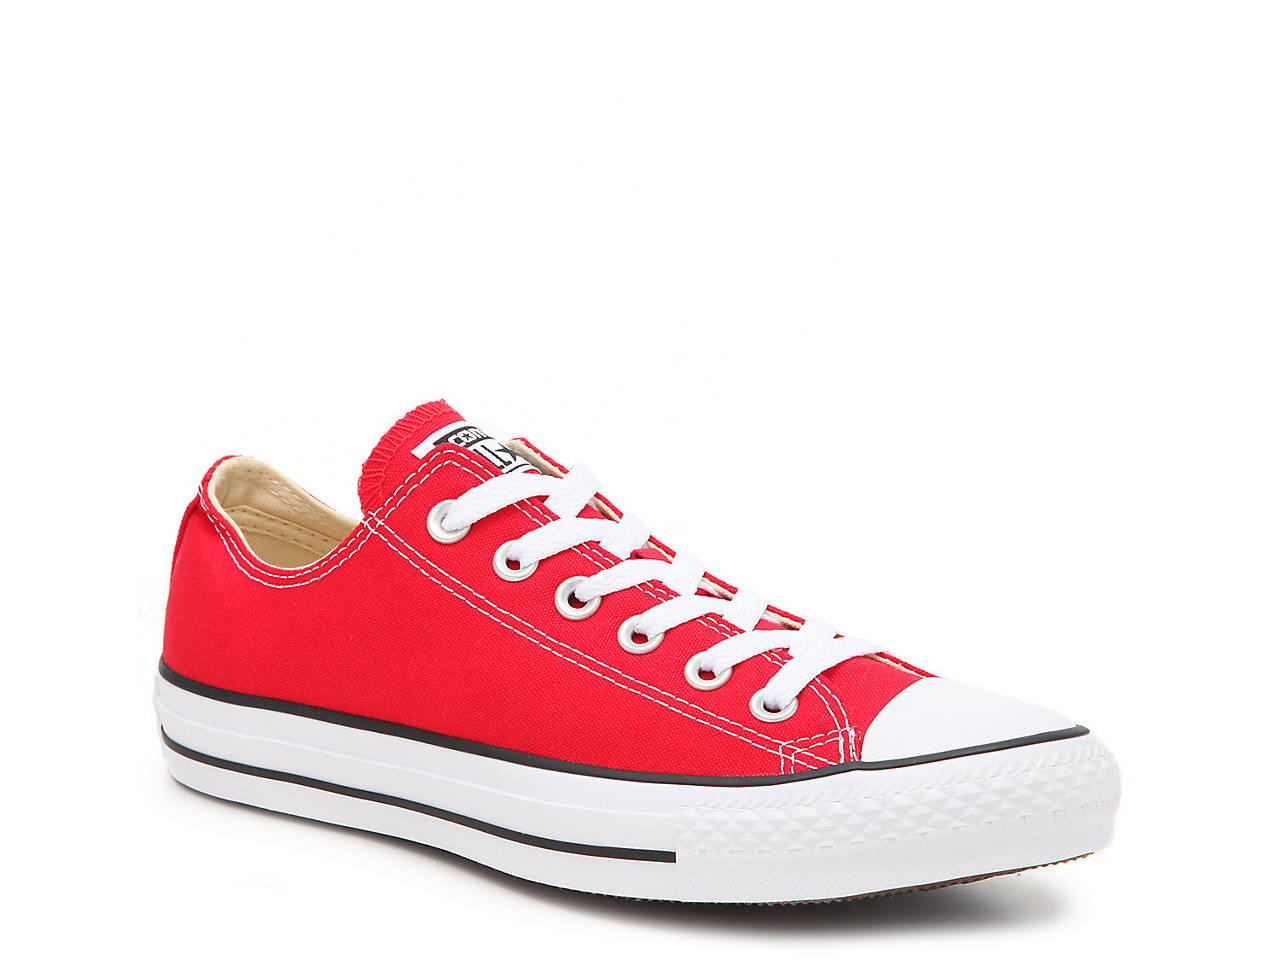 7e6eeebffdcc Converse Chuck Taylor All Star Sneaker - Women s Women s Shoes